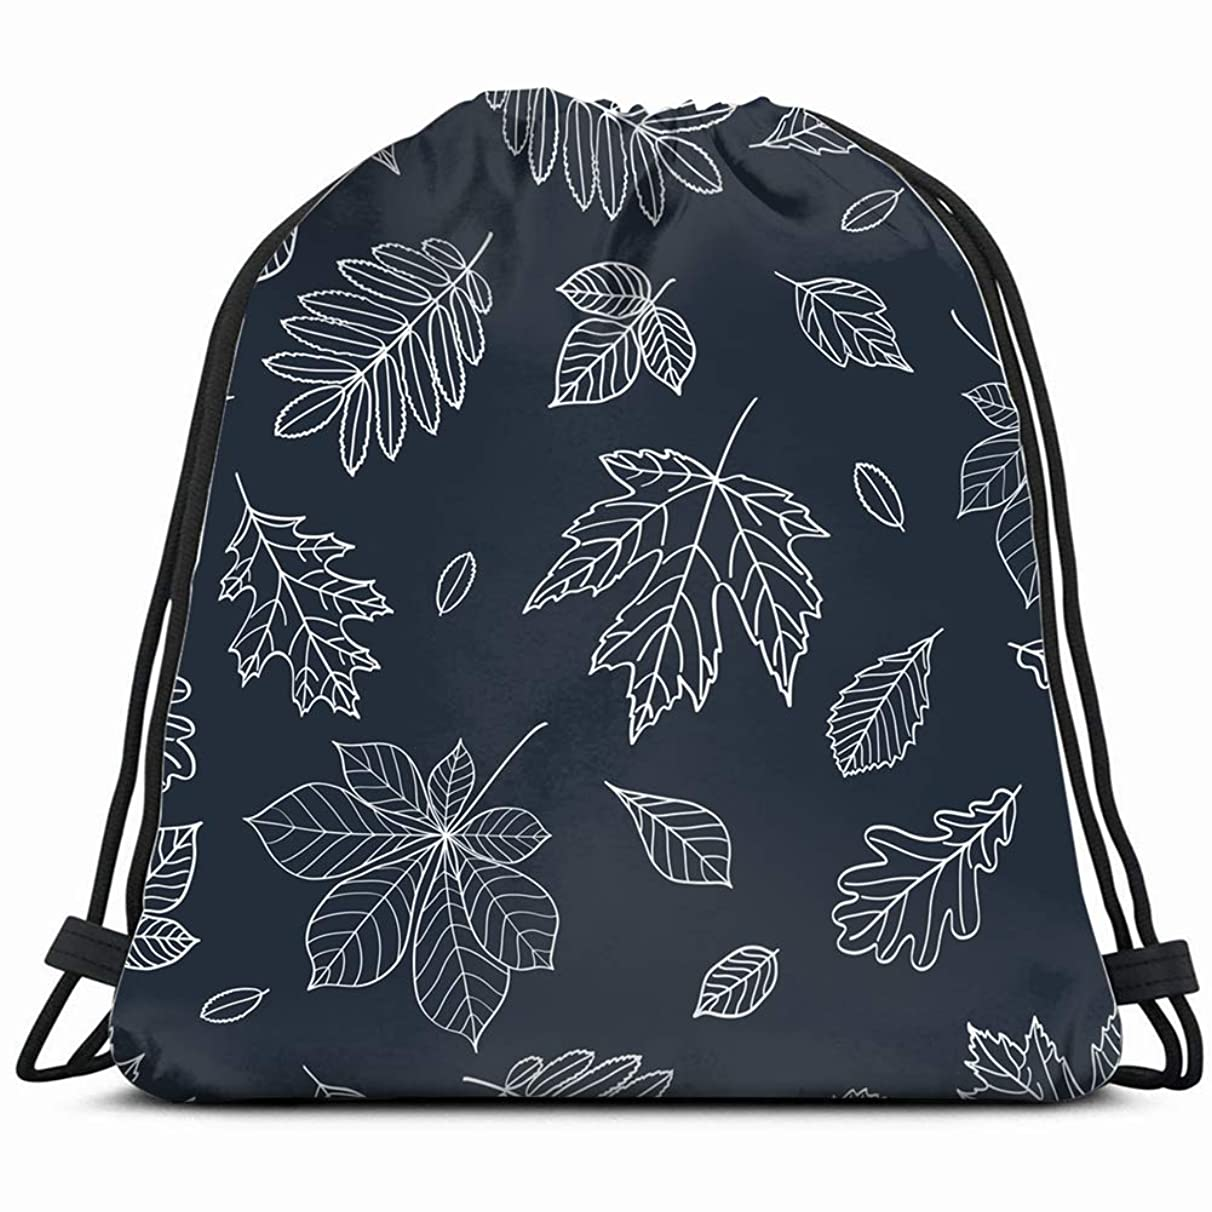 fall leaves autumn drawn chalk nature Drawstring Backpack Gym Sack Lightweight Bag Water Resistant Gym Backpack for Women&Men for Sports,Travelling,Hiking,Camping,Shopping Yoga